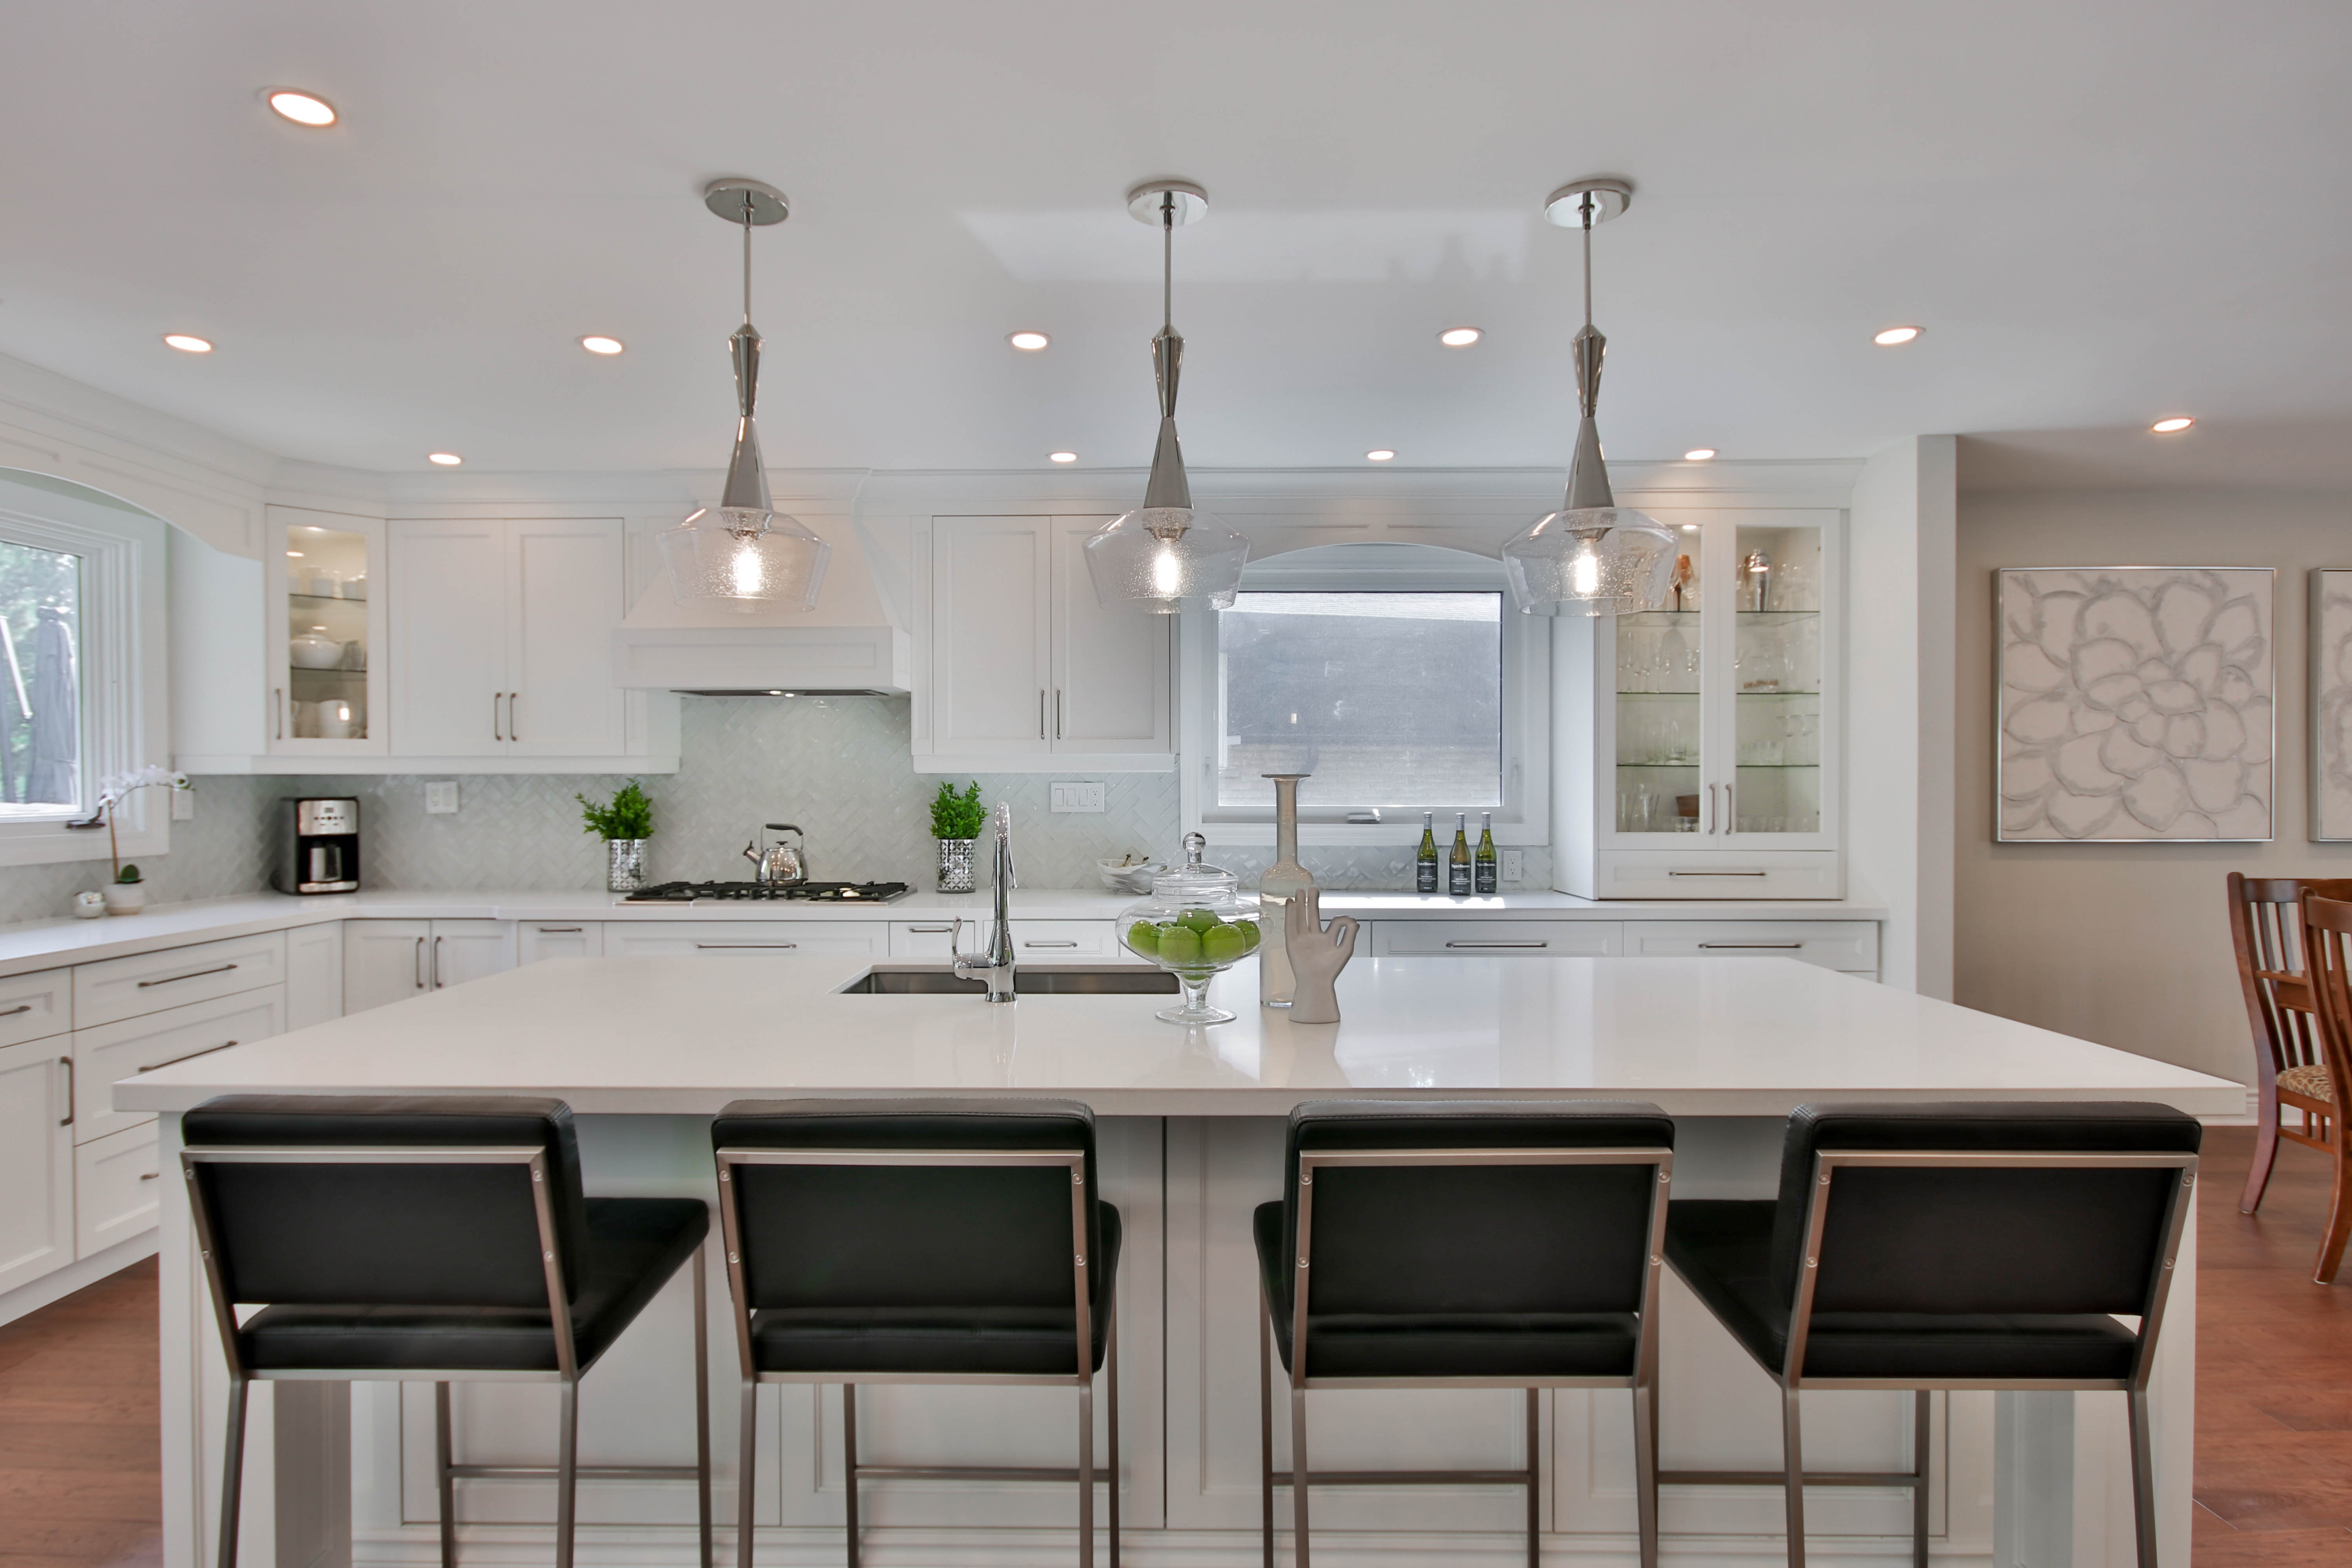 The Top 5 Kitchen Design Trends for 2021